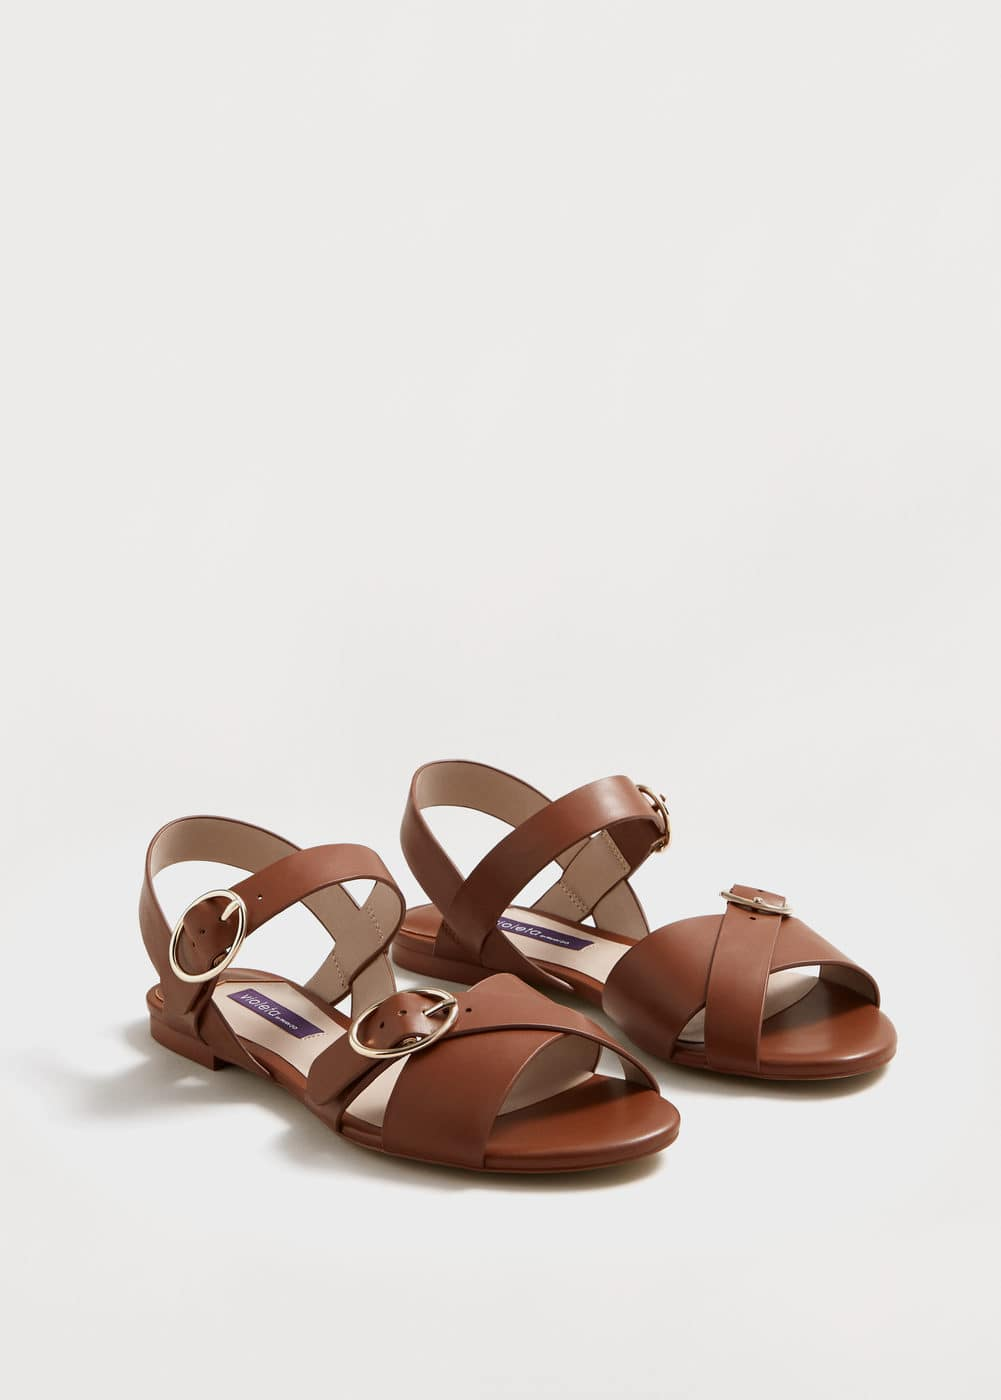 Buckle strap sandals | VIOLETA BY MANGO